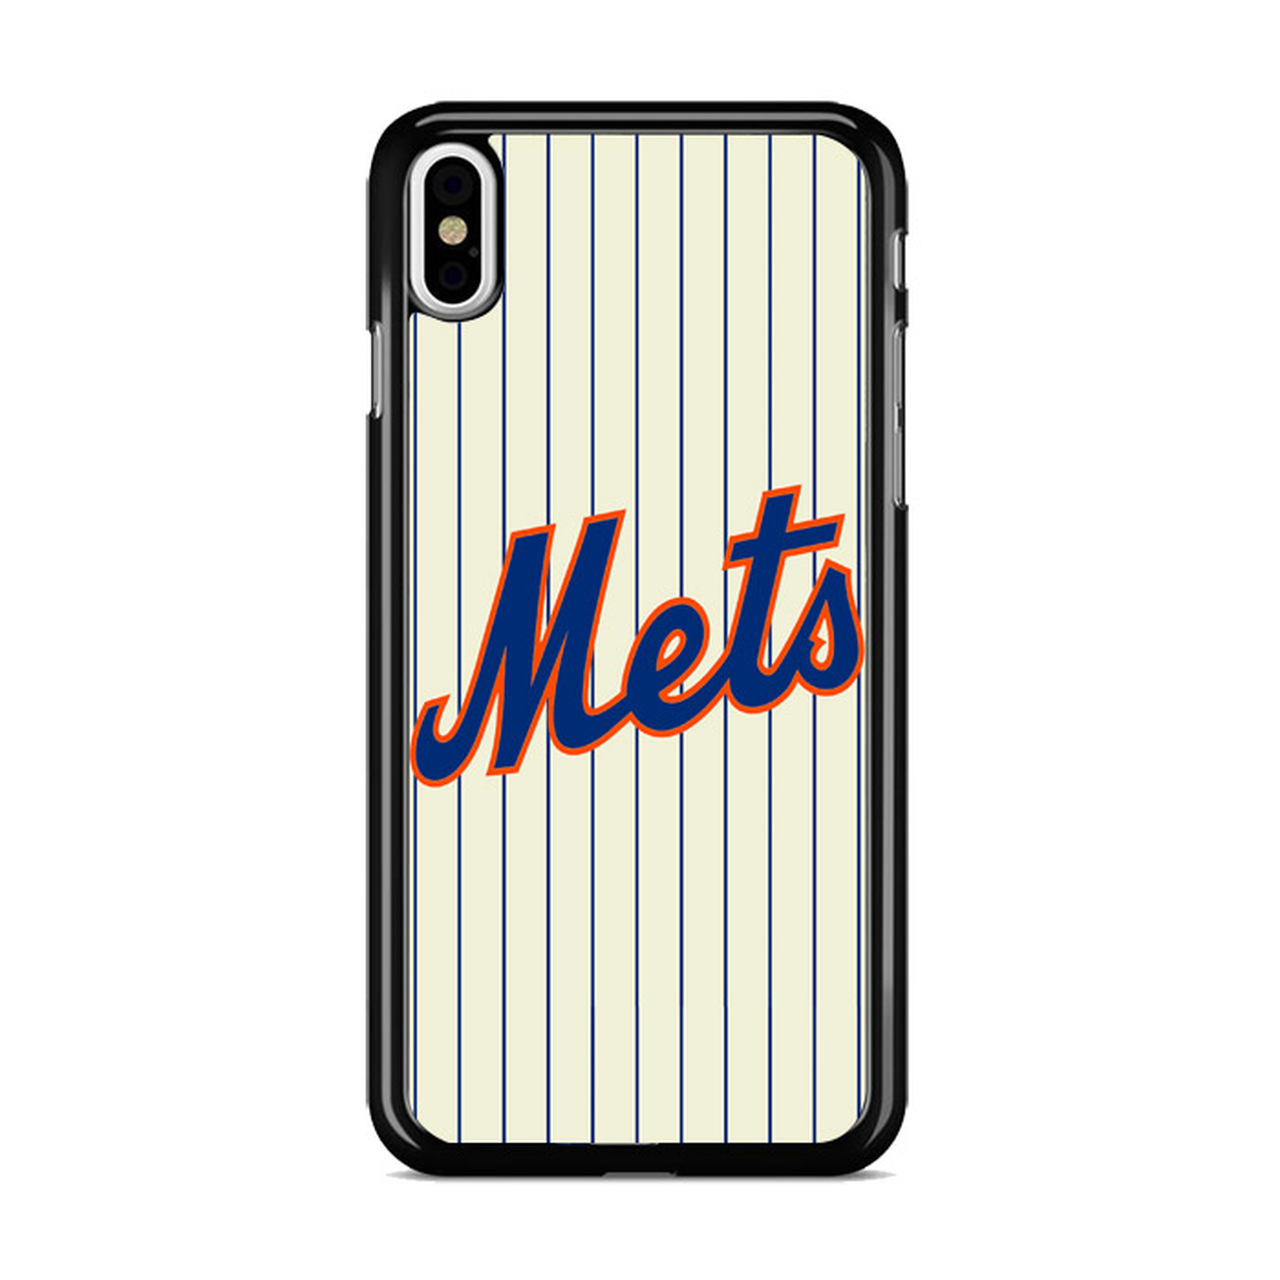 New York Mets Wallpaper Posted By Ethan Sellers